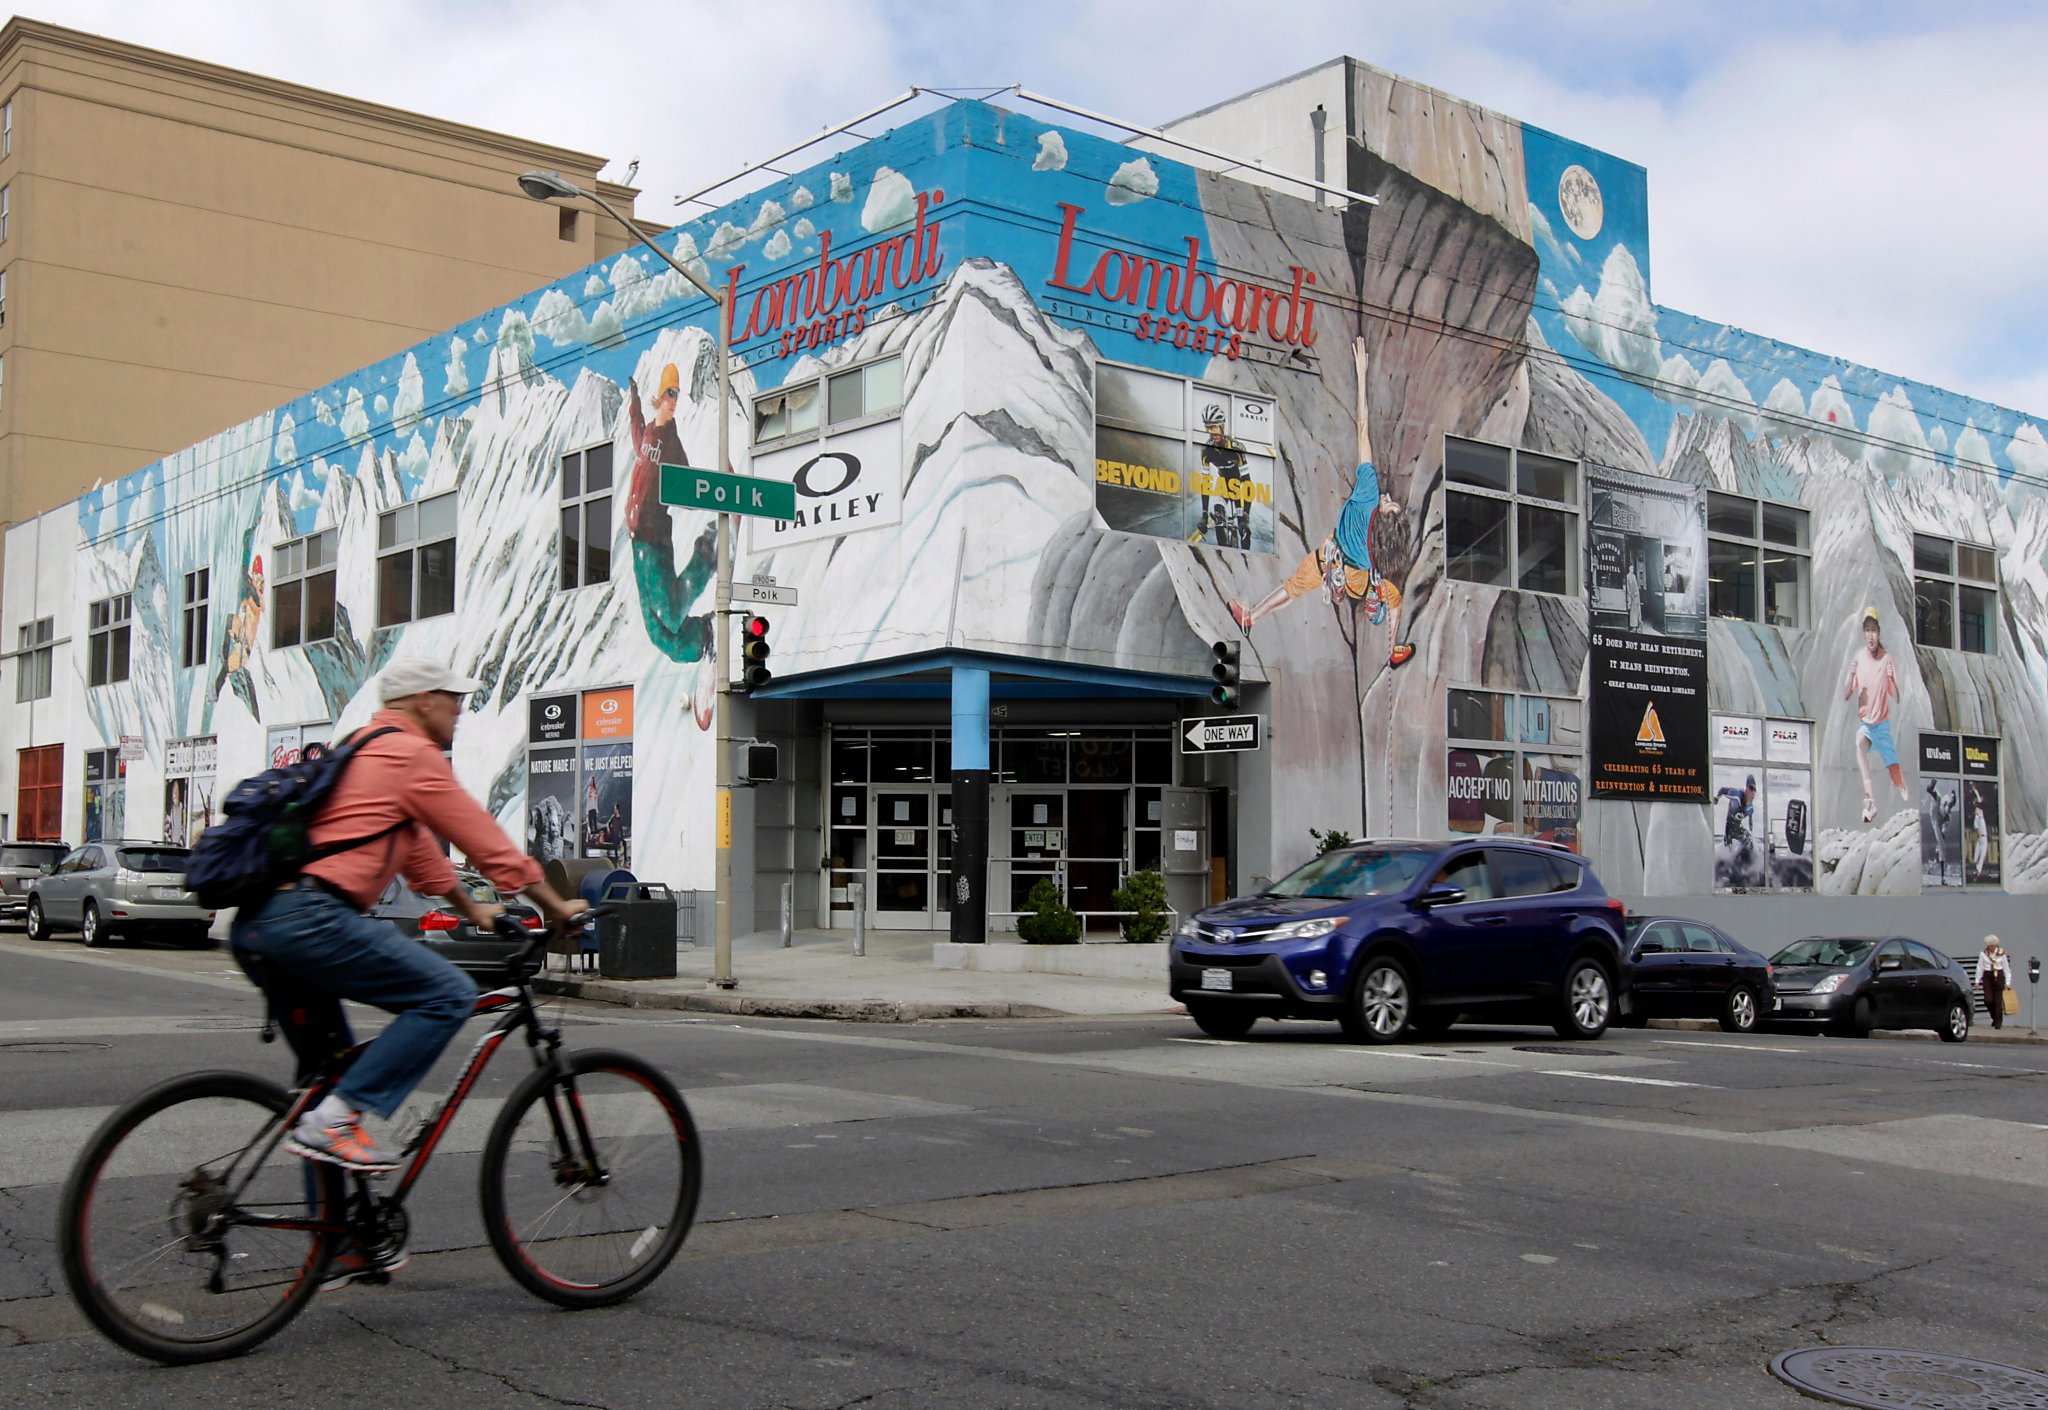 sfchronicle.com - Dominic Fracassa and J.K. Dineen - SF planners turn down new Whole Foods 365 store at Polk and Jackson